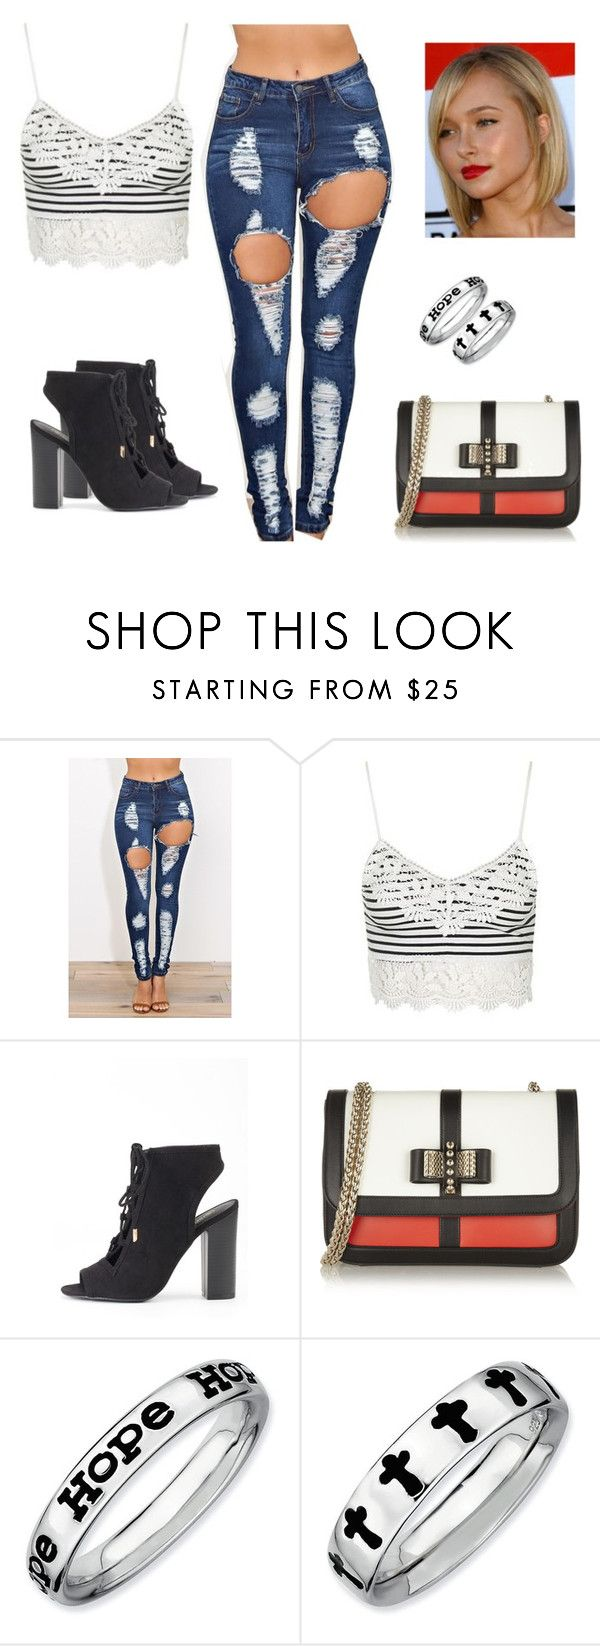 """""""#27"""" by sndrita ❤ liked on Polyvore featuring Topshop, Christian Louboutin and Expressions"""